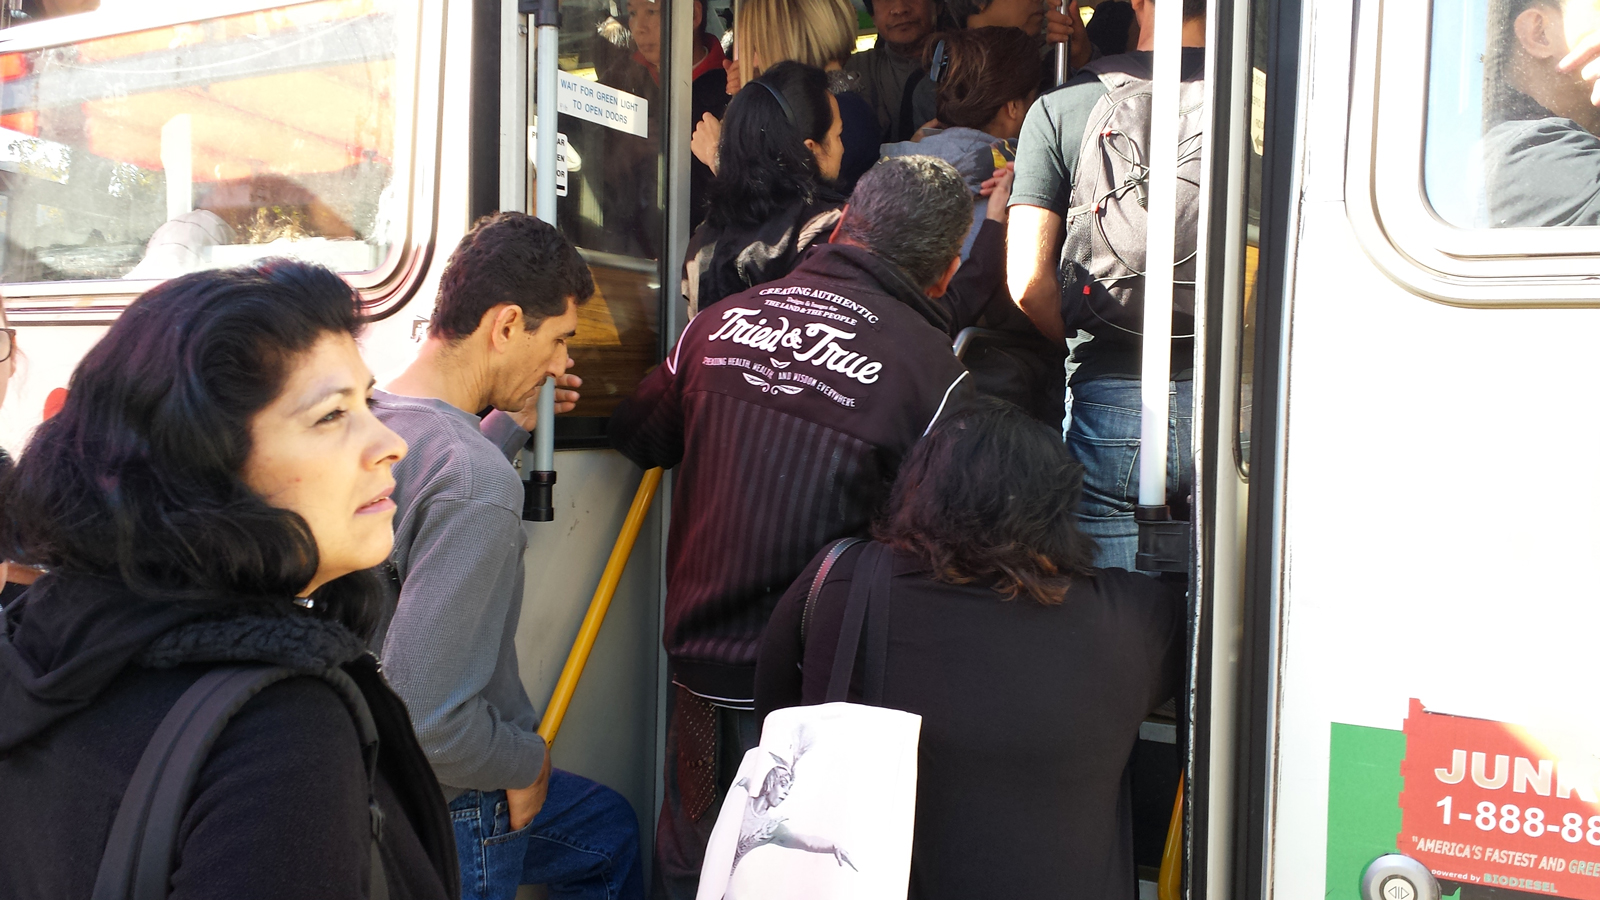 Passengers Pack Muni and Commute Times Soar